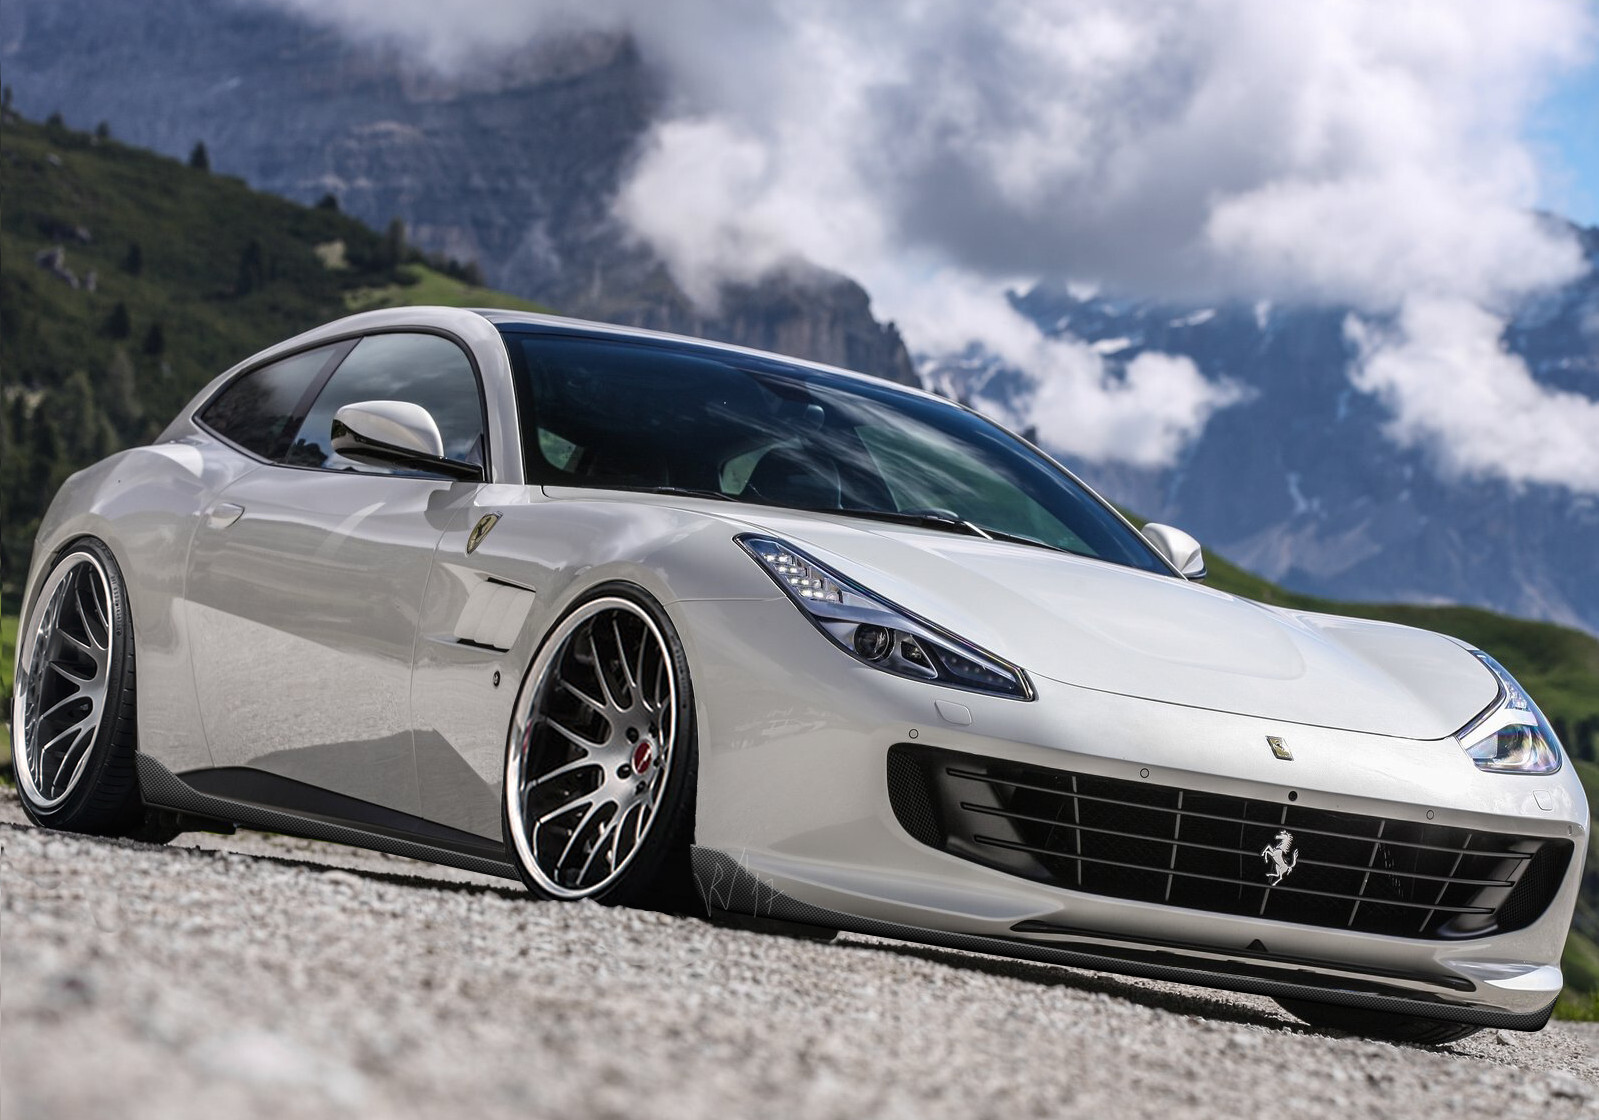 A Ferrari Lusso with lowered suspension, some deeper wheels and simple carbon fiber extensions. Commission work that ended up not being implemented in real life as the owner wanted something more extreme.